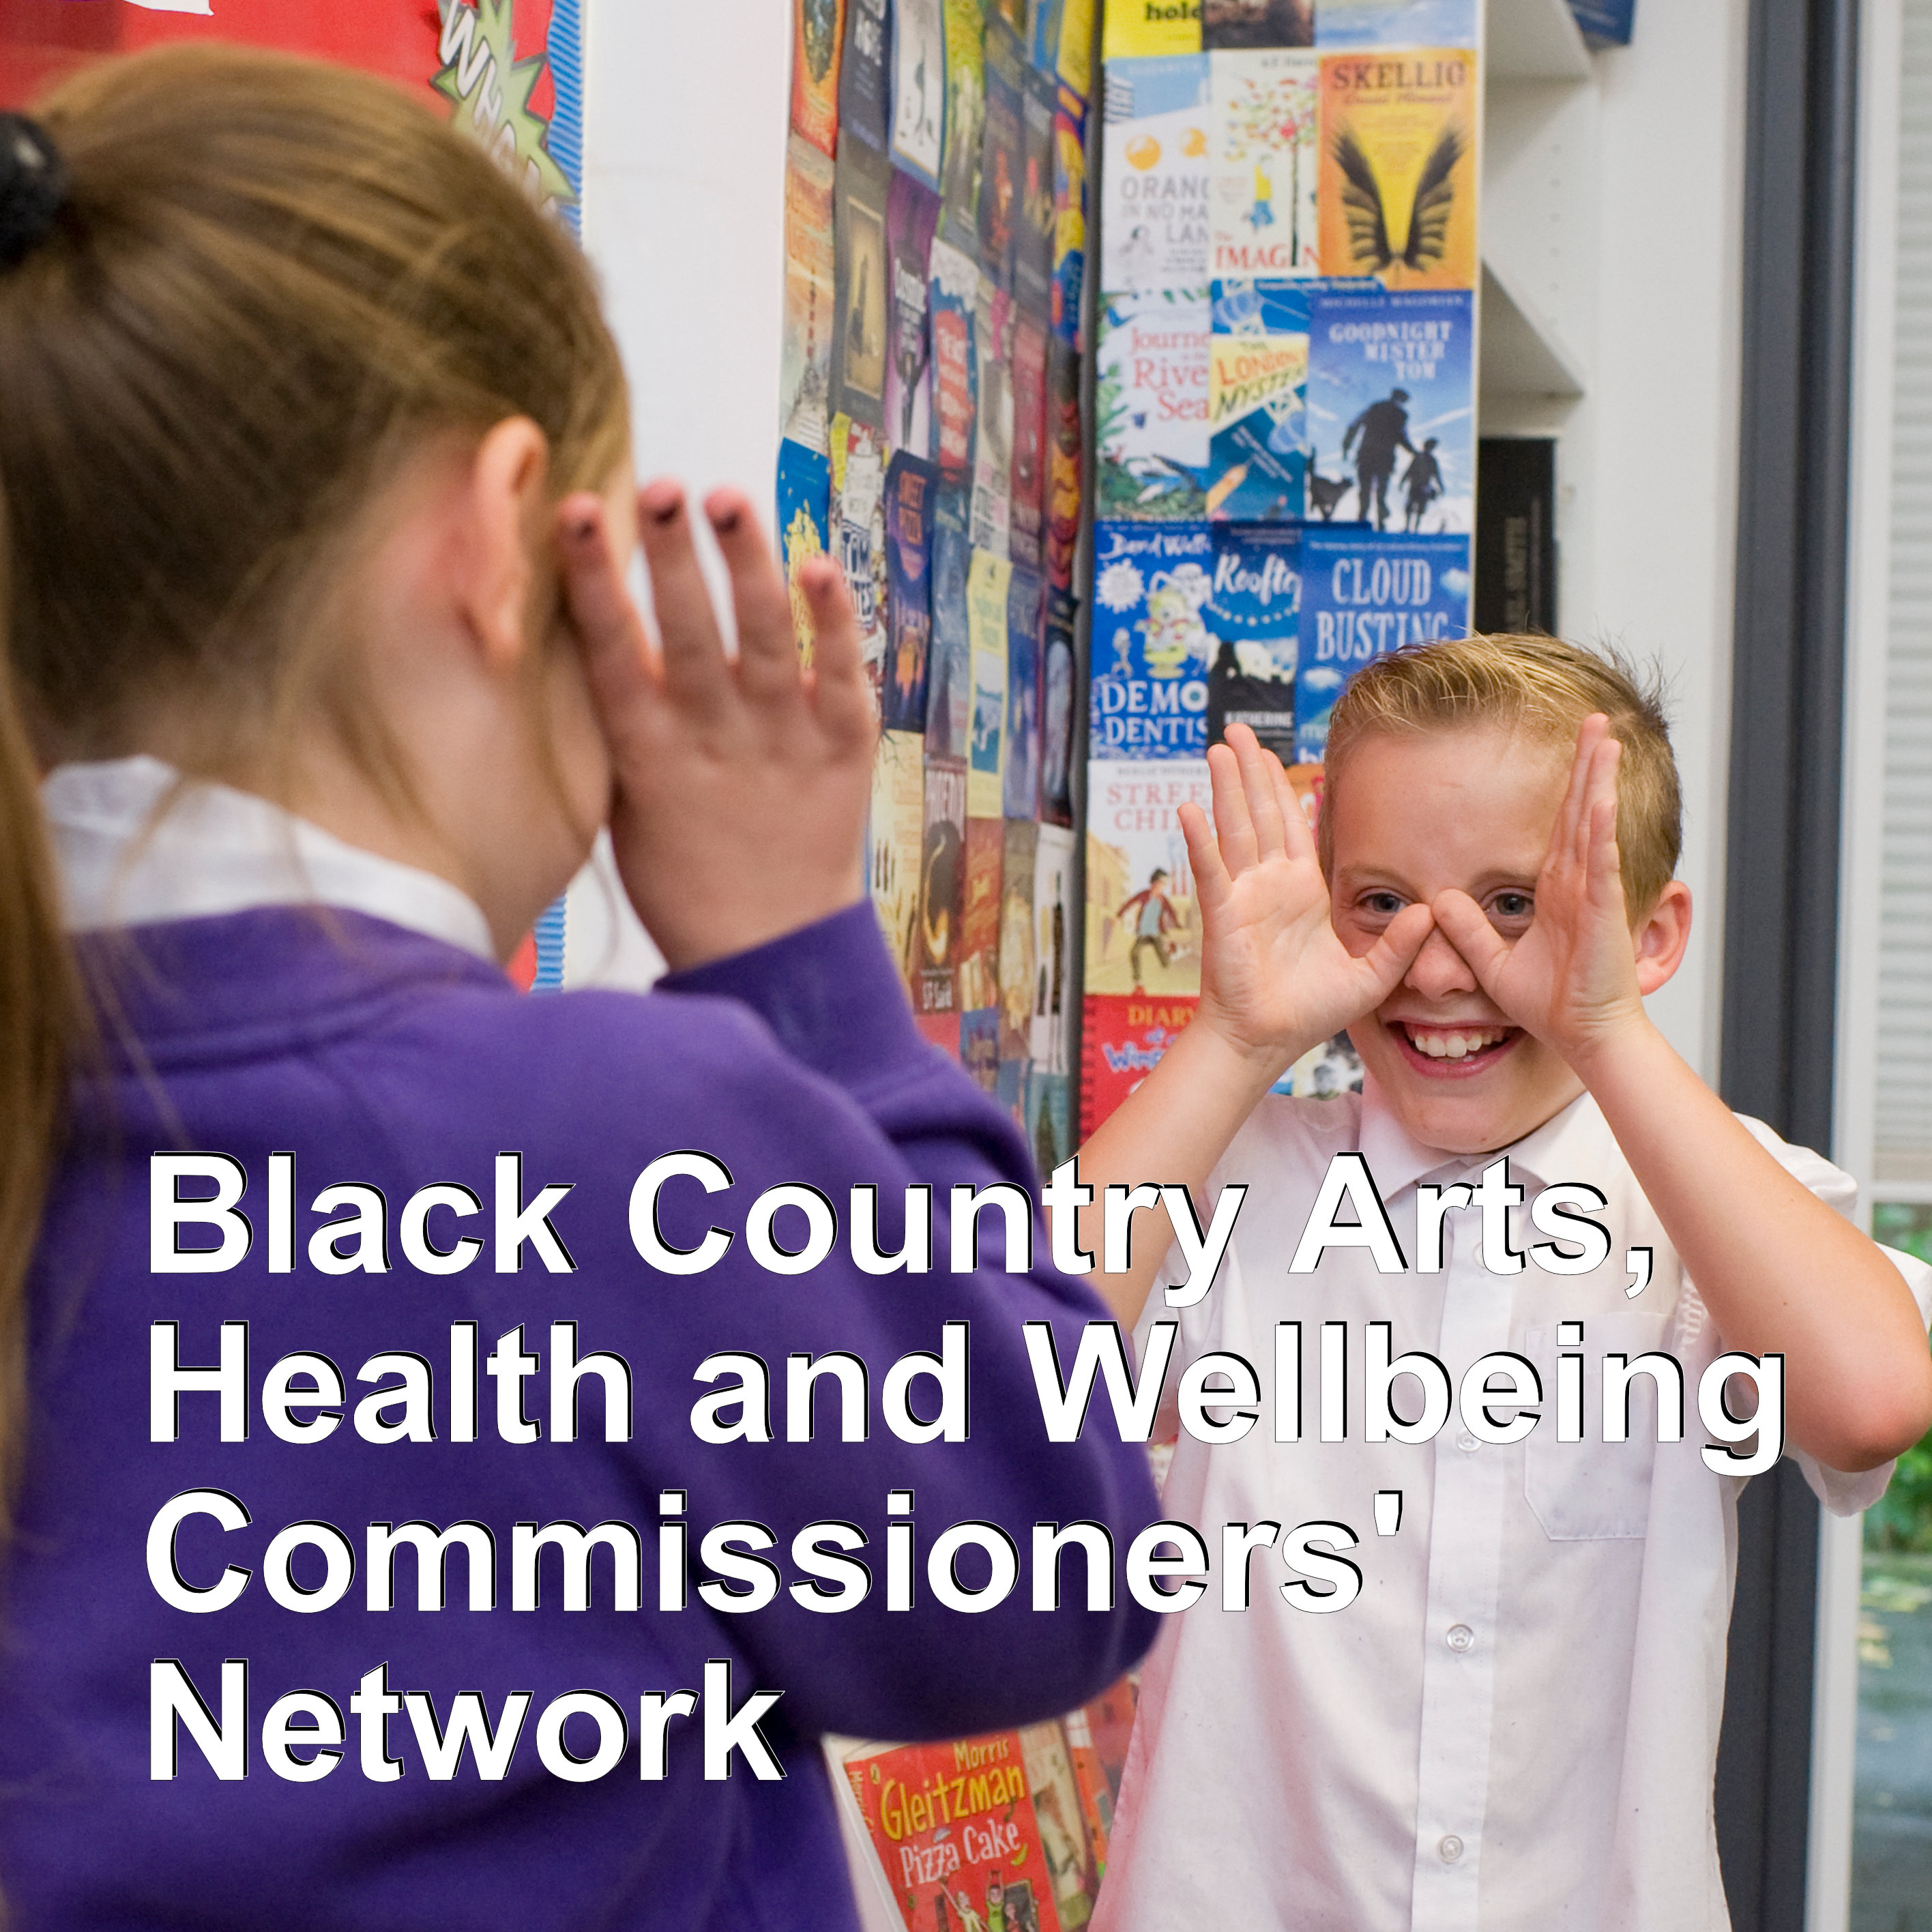 BCAH&W Commissioners Network